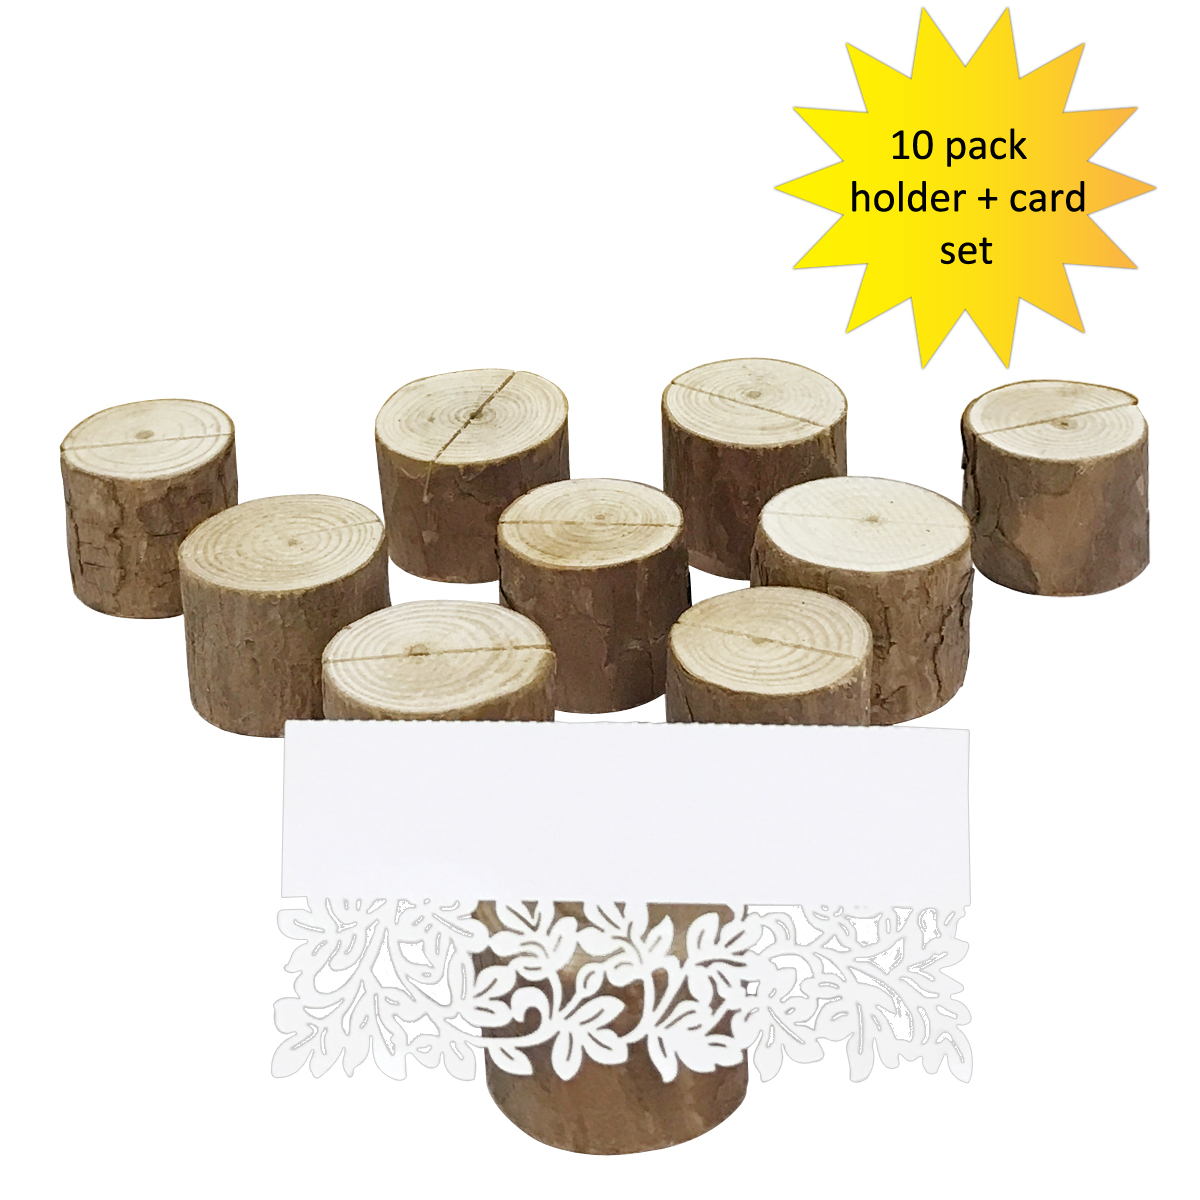 wrapables rustic wooden placecard holders with table name place cards for wedding